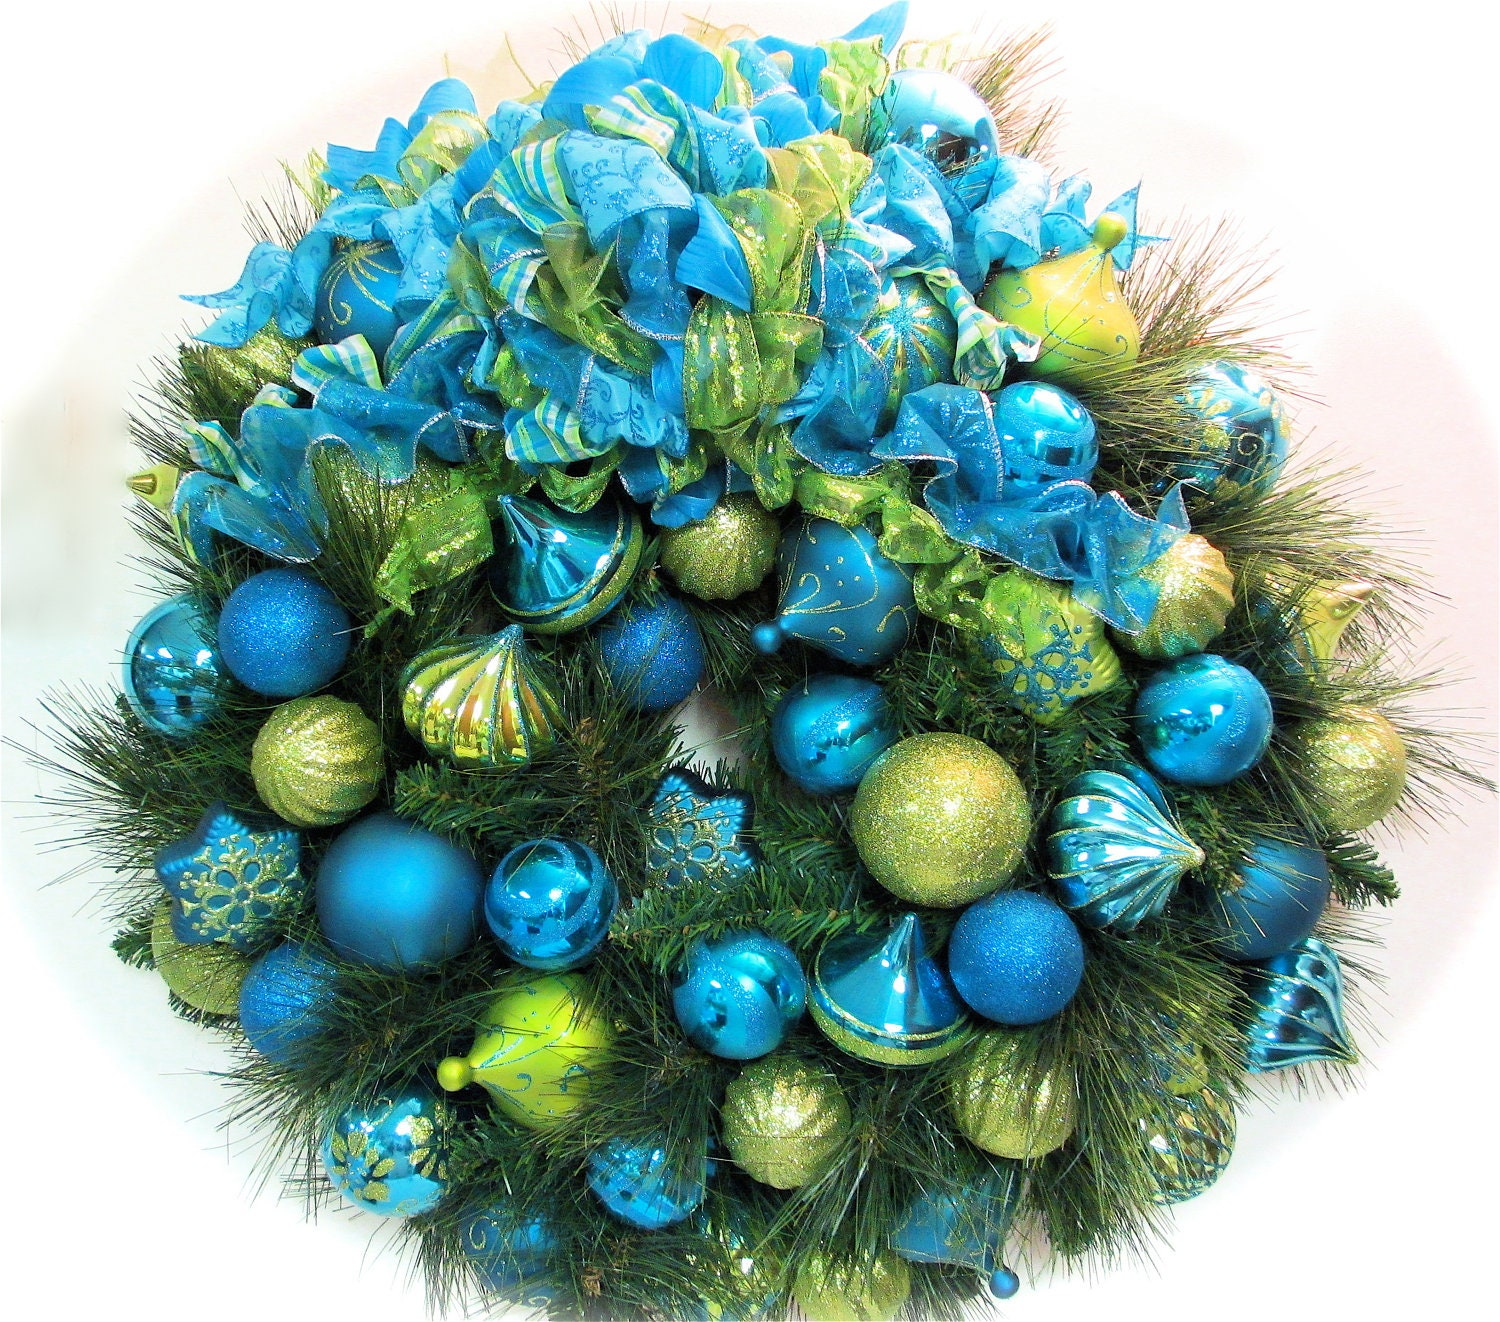 Blue And Green Christmas Tree: Christmas Holiday Bright Lime Green And Turquoise Blue Wreath